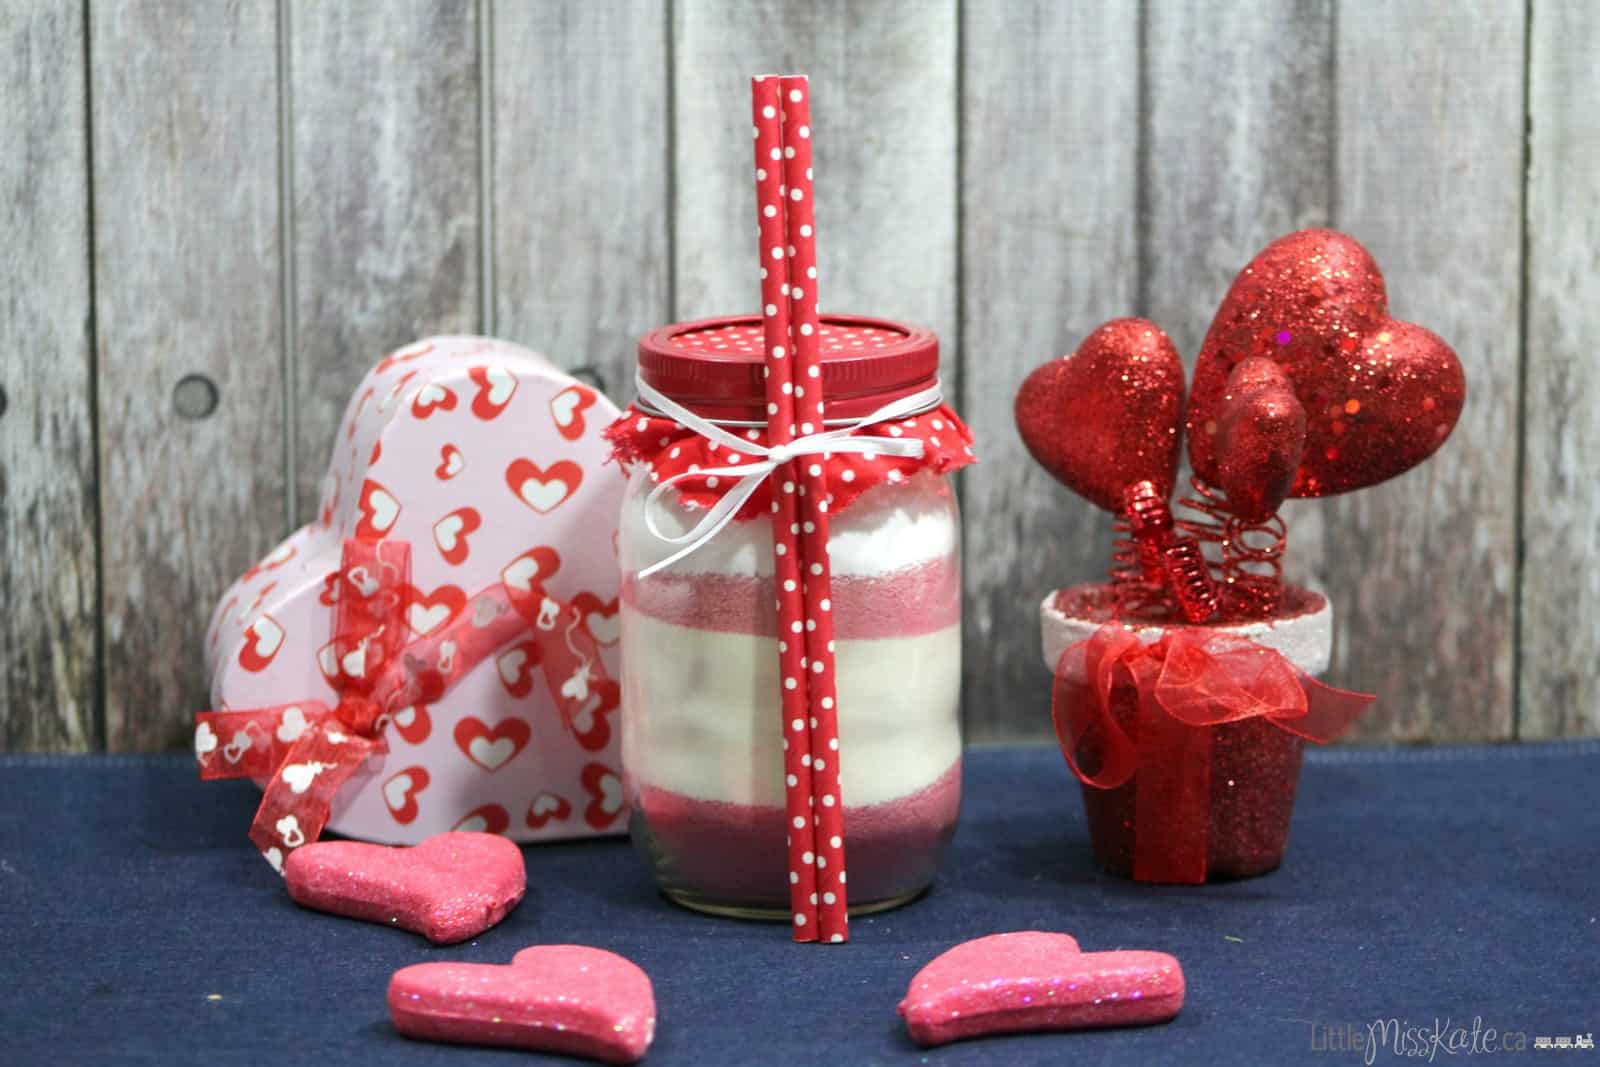 mason-jar-gift-idea-hot-Strawberry-drink-mix-recipe-valentines-day-drink-idea-02